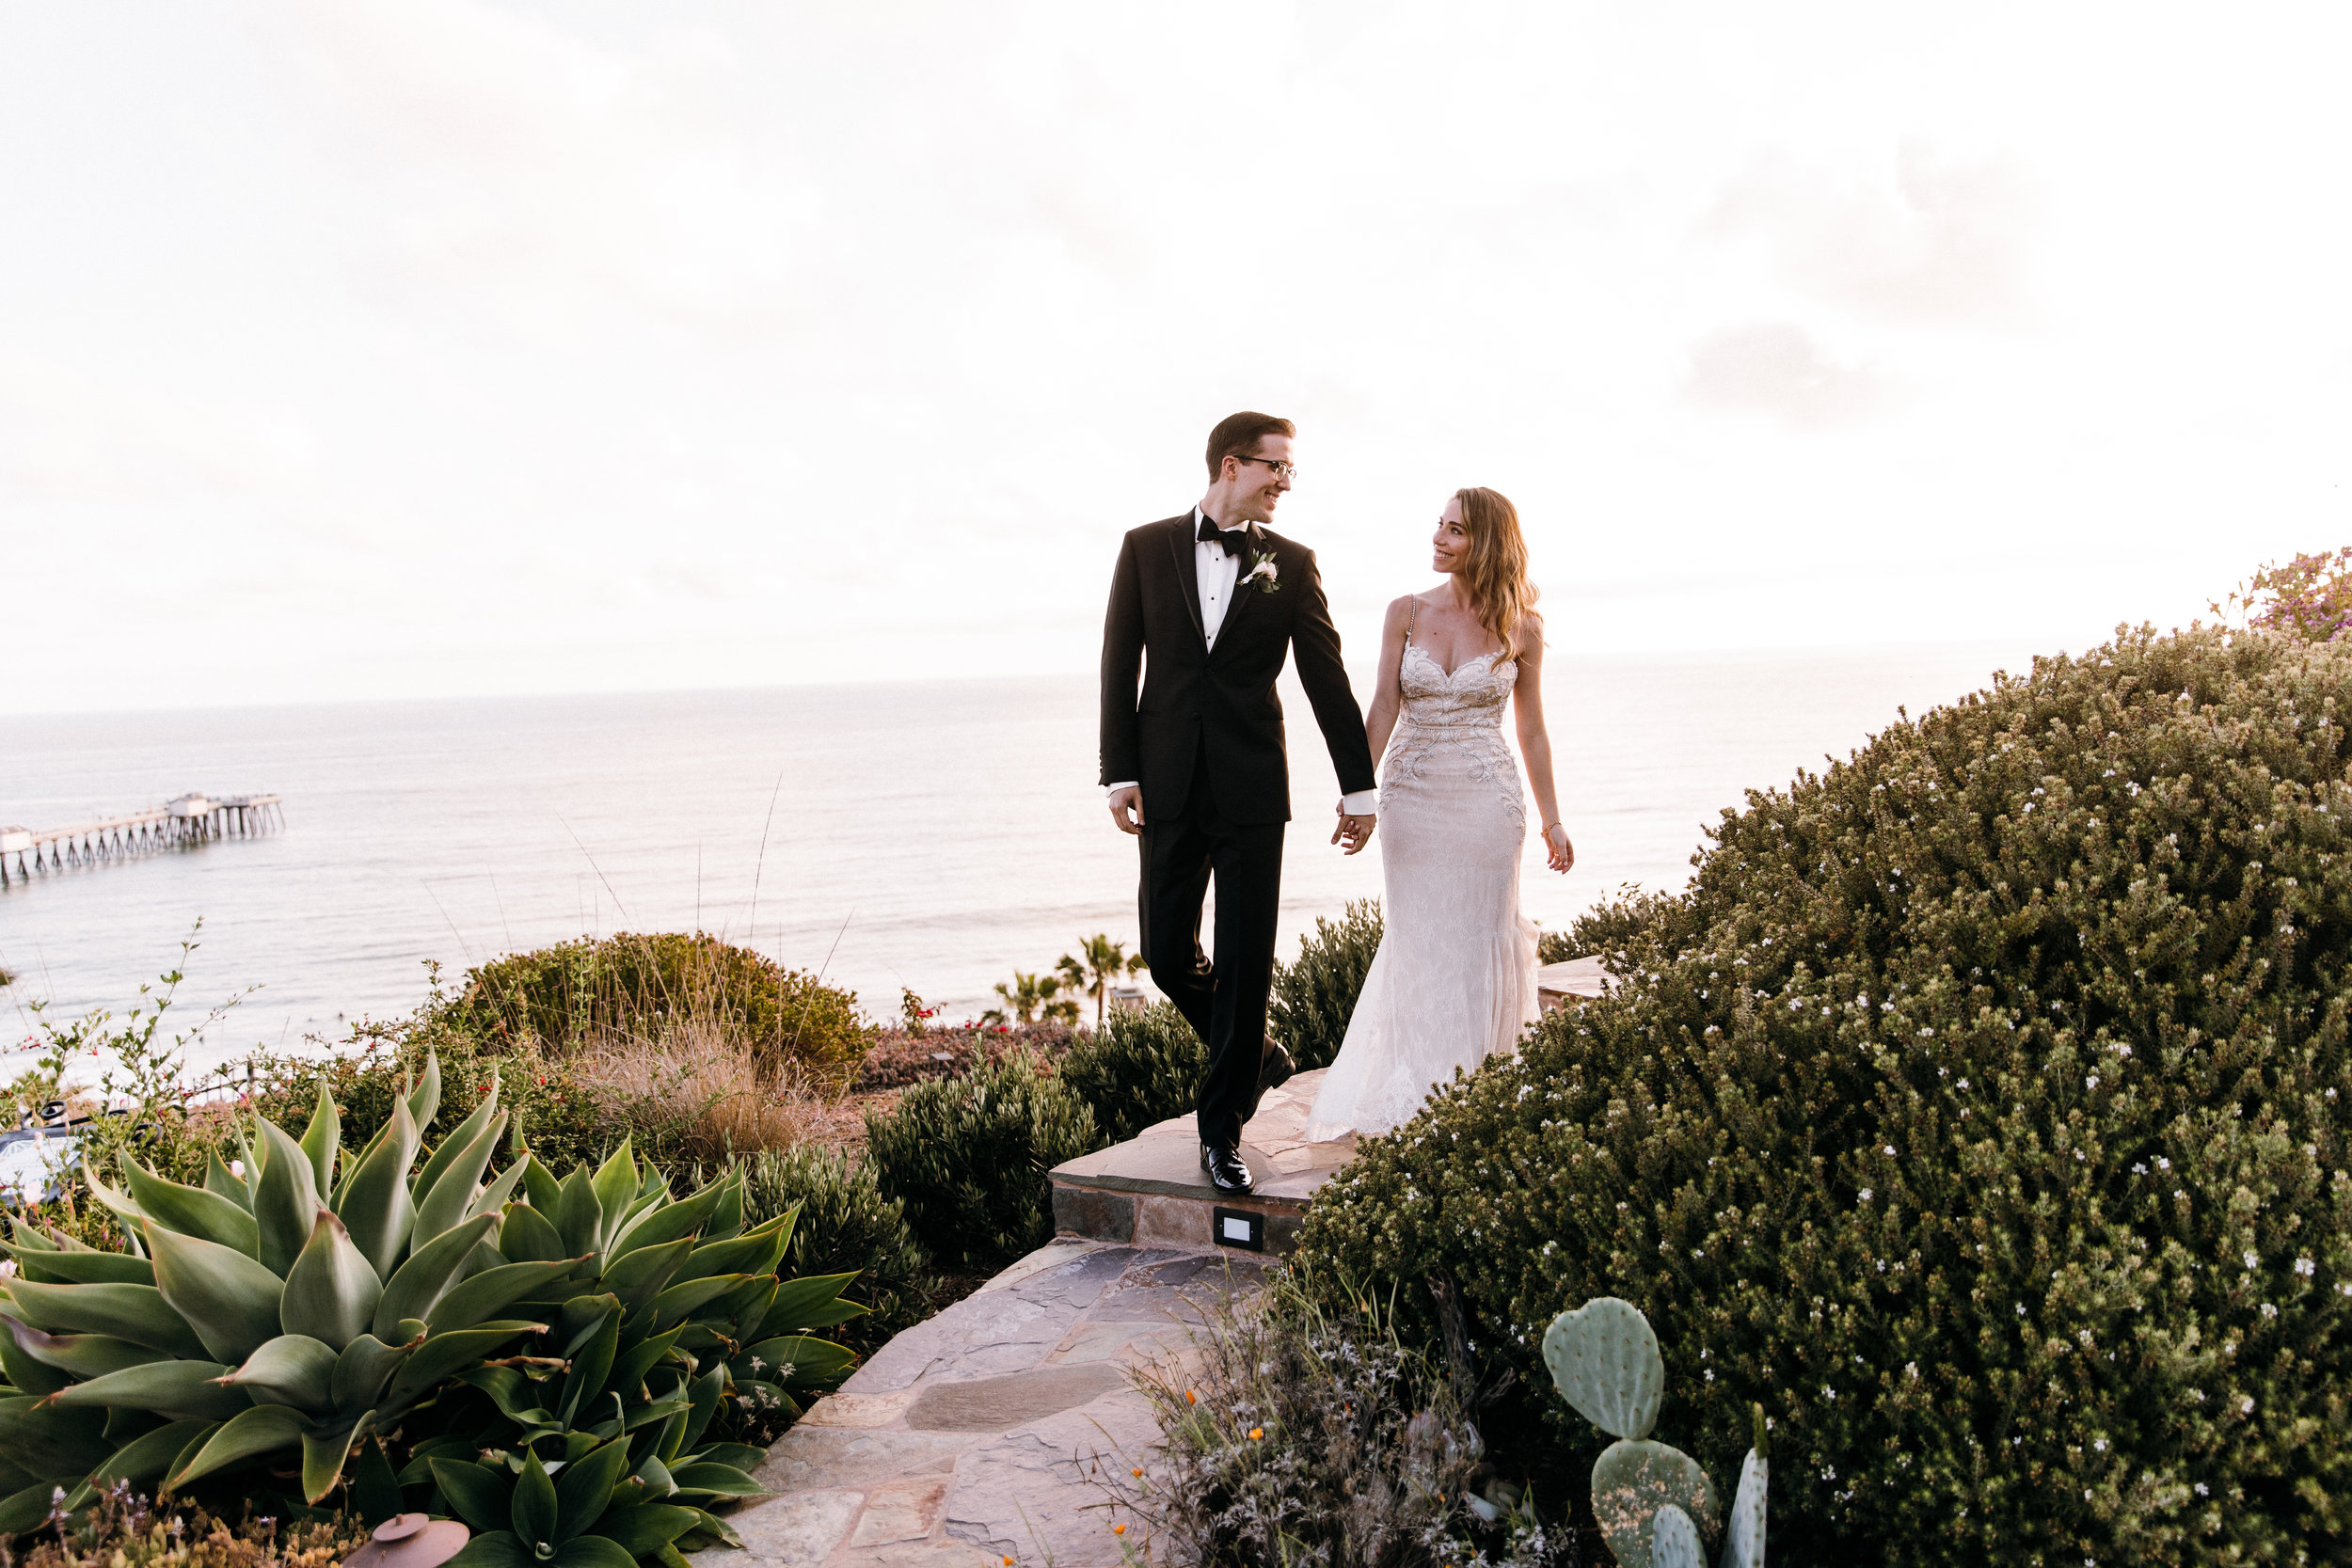 OC WEDDING PHOTOGRAPHER, SOUTHERN CALIFORNIA WEDDING PHOTOGRAPHER, ORANGE COUNTY WEDDING PHOTOGRAPHER, SOCAL WEDDING PHOTOGRAPHER, SAN CLEMENTE WEDDING PHOTOGRAPHER, CASA ROMANTICA WEDDING